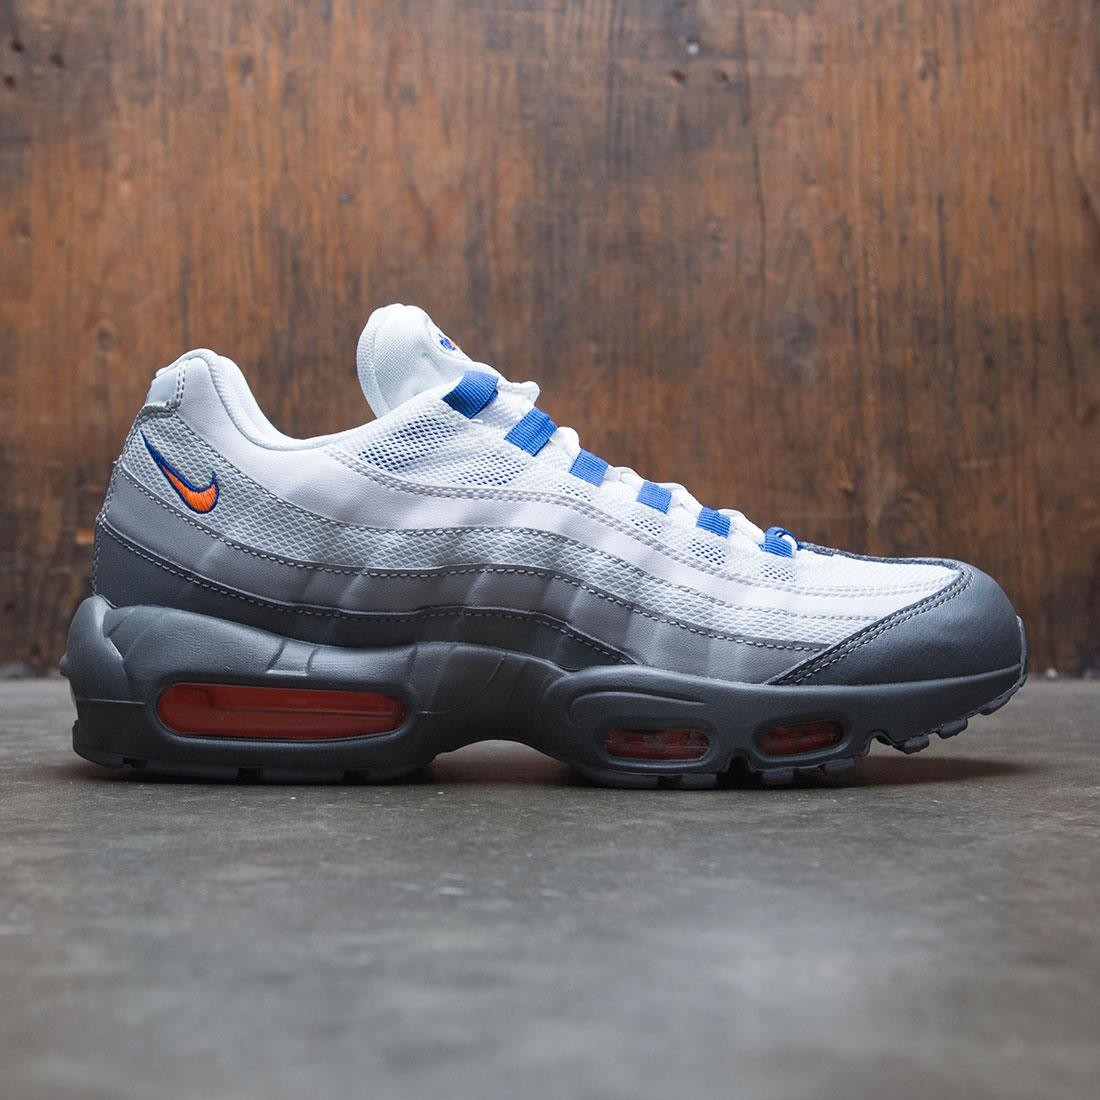 8d545b2d5c2b ... promo code nike men air max 95 essential cool grey total orange white  35951 0e3bc